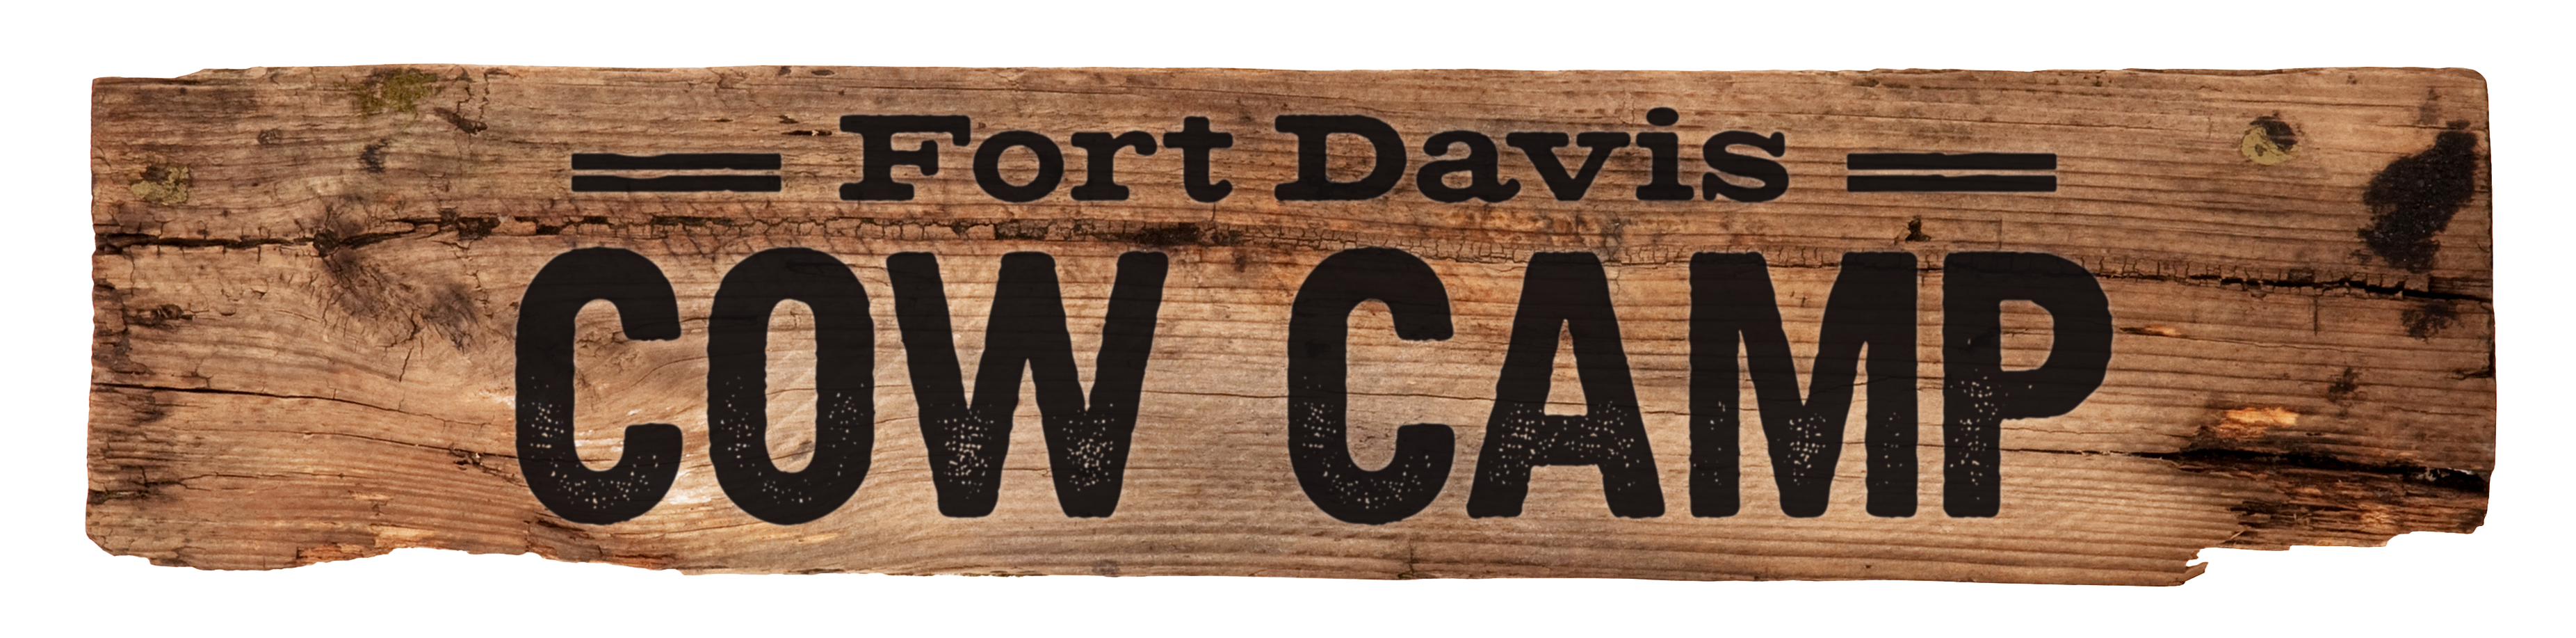 Fort Davis Cow Camp